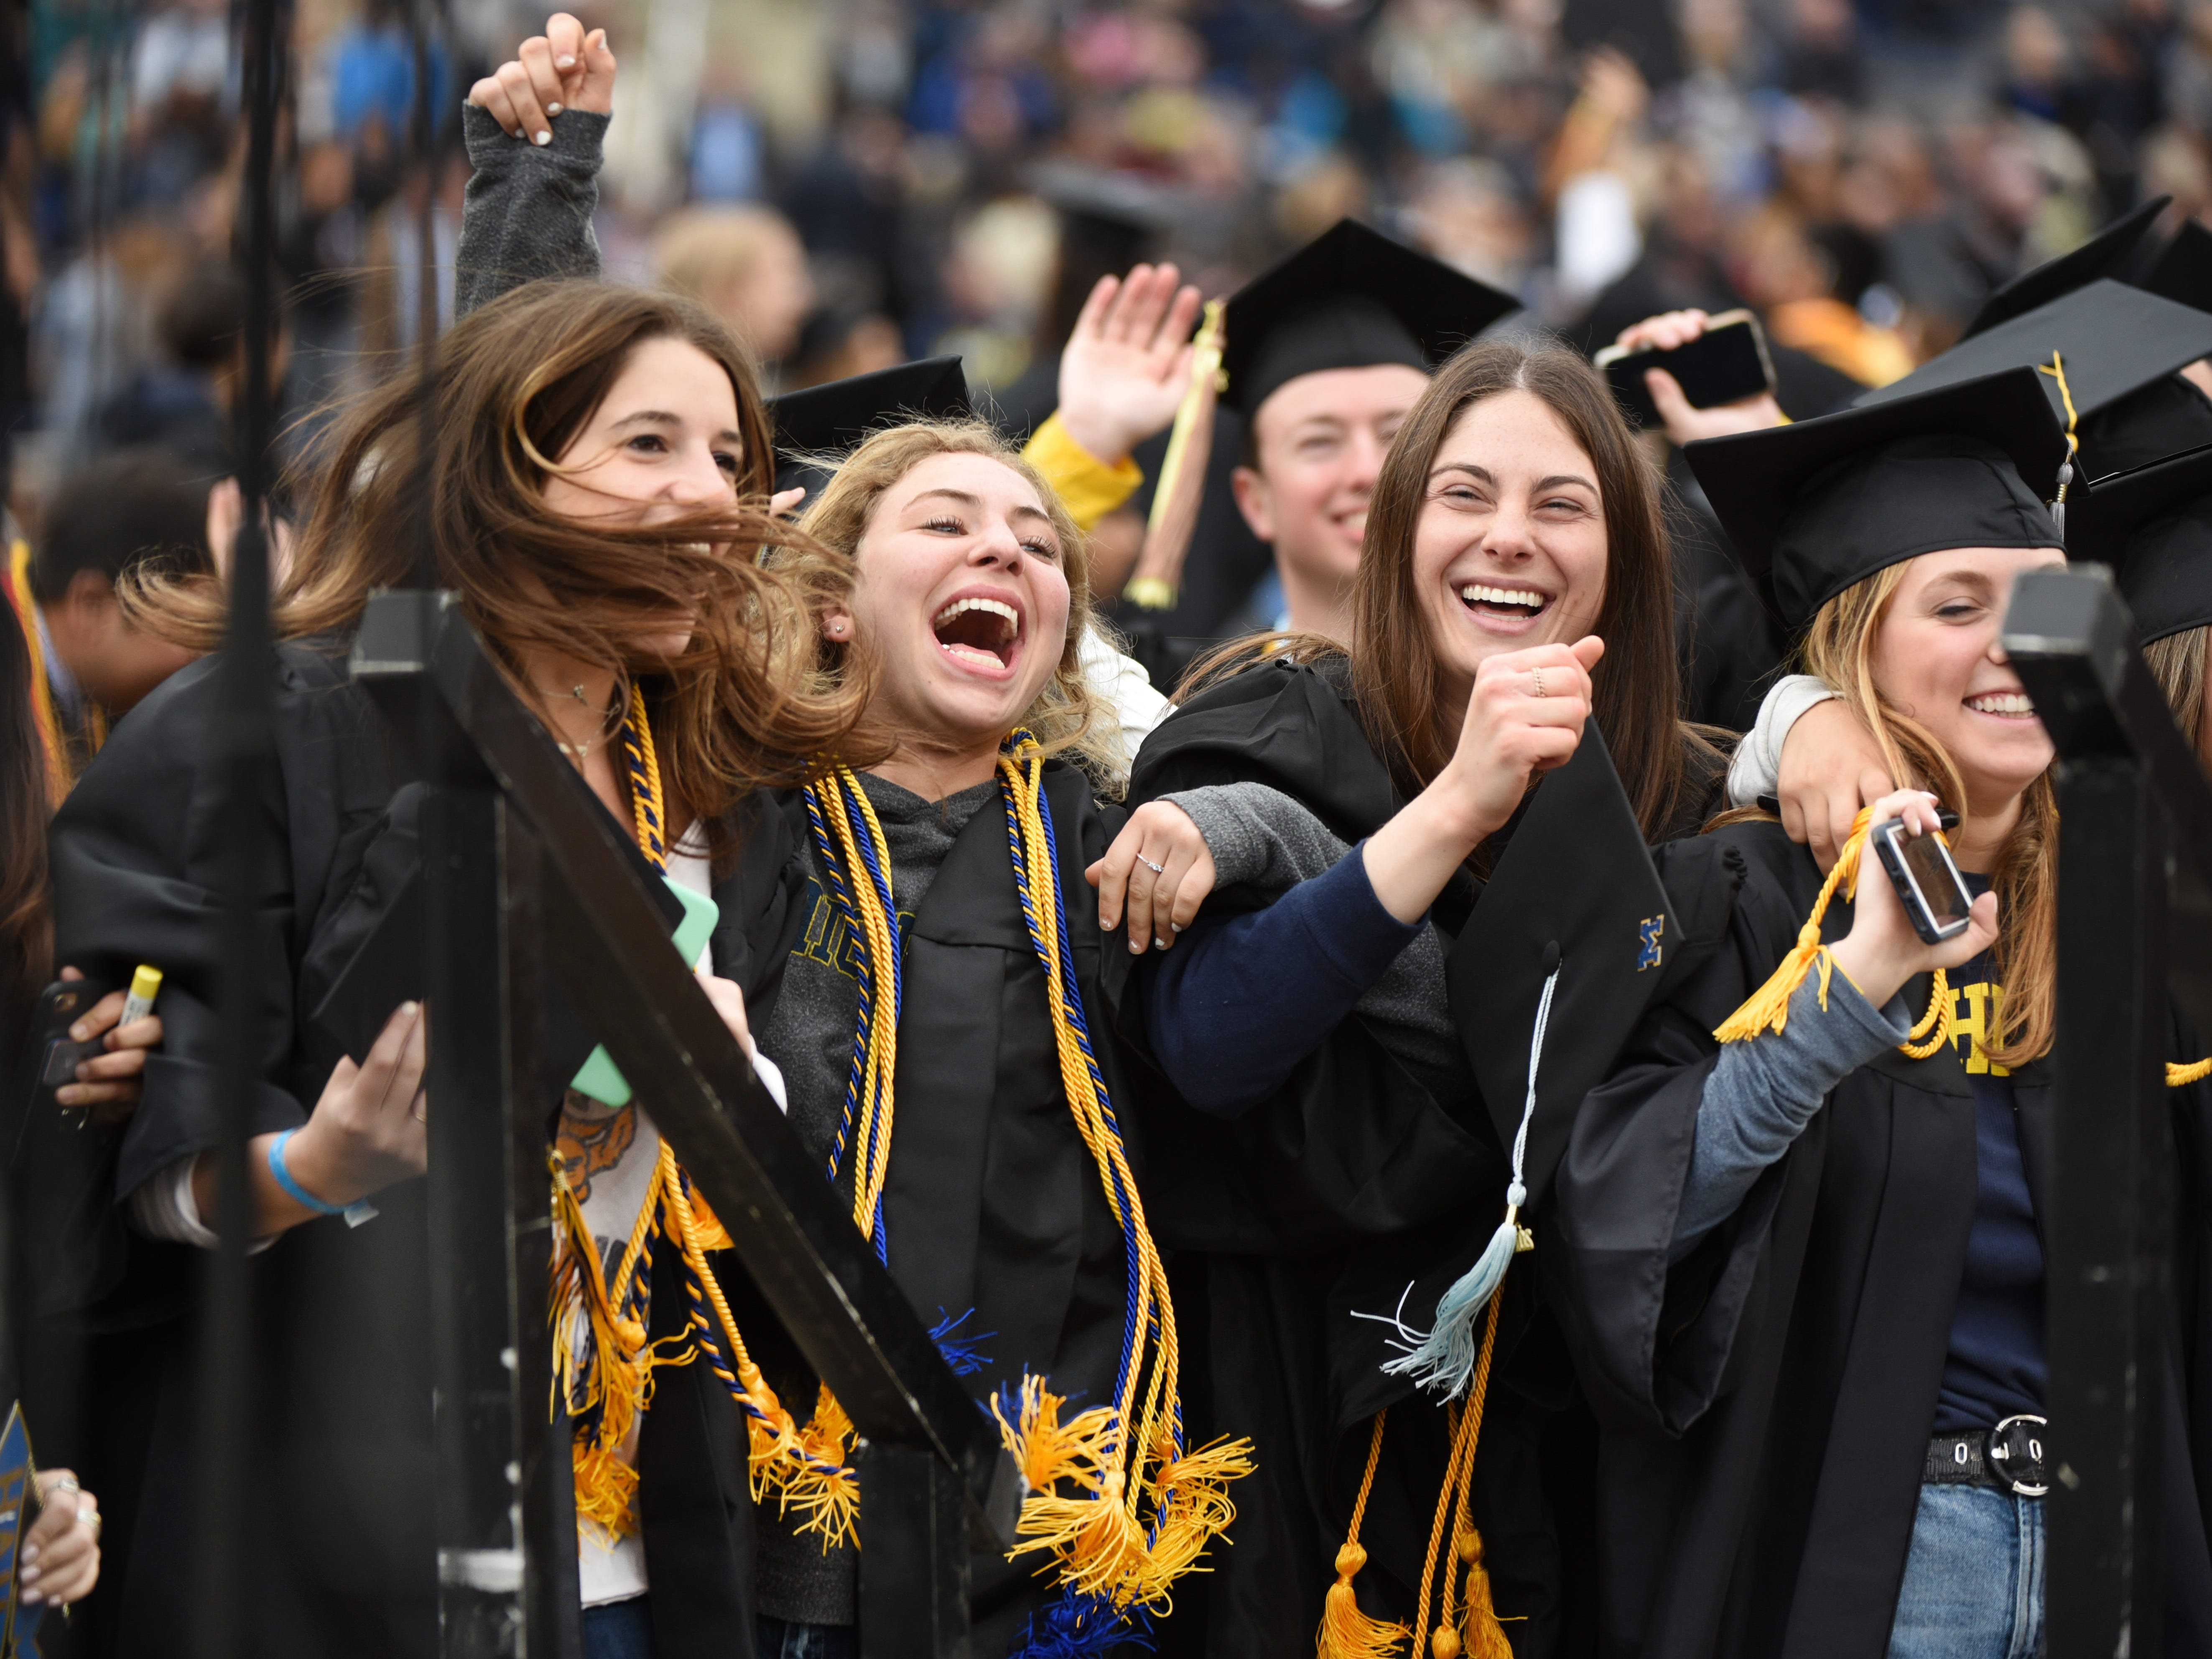 University of Michigan students celebrate during commencement exercises.